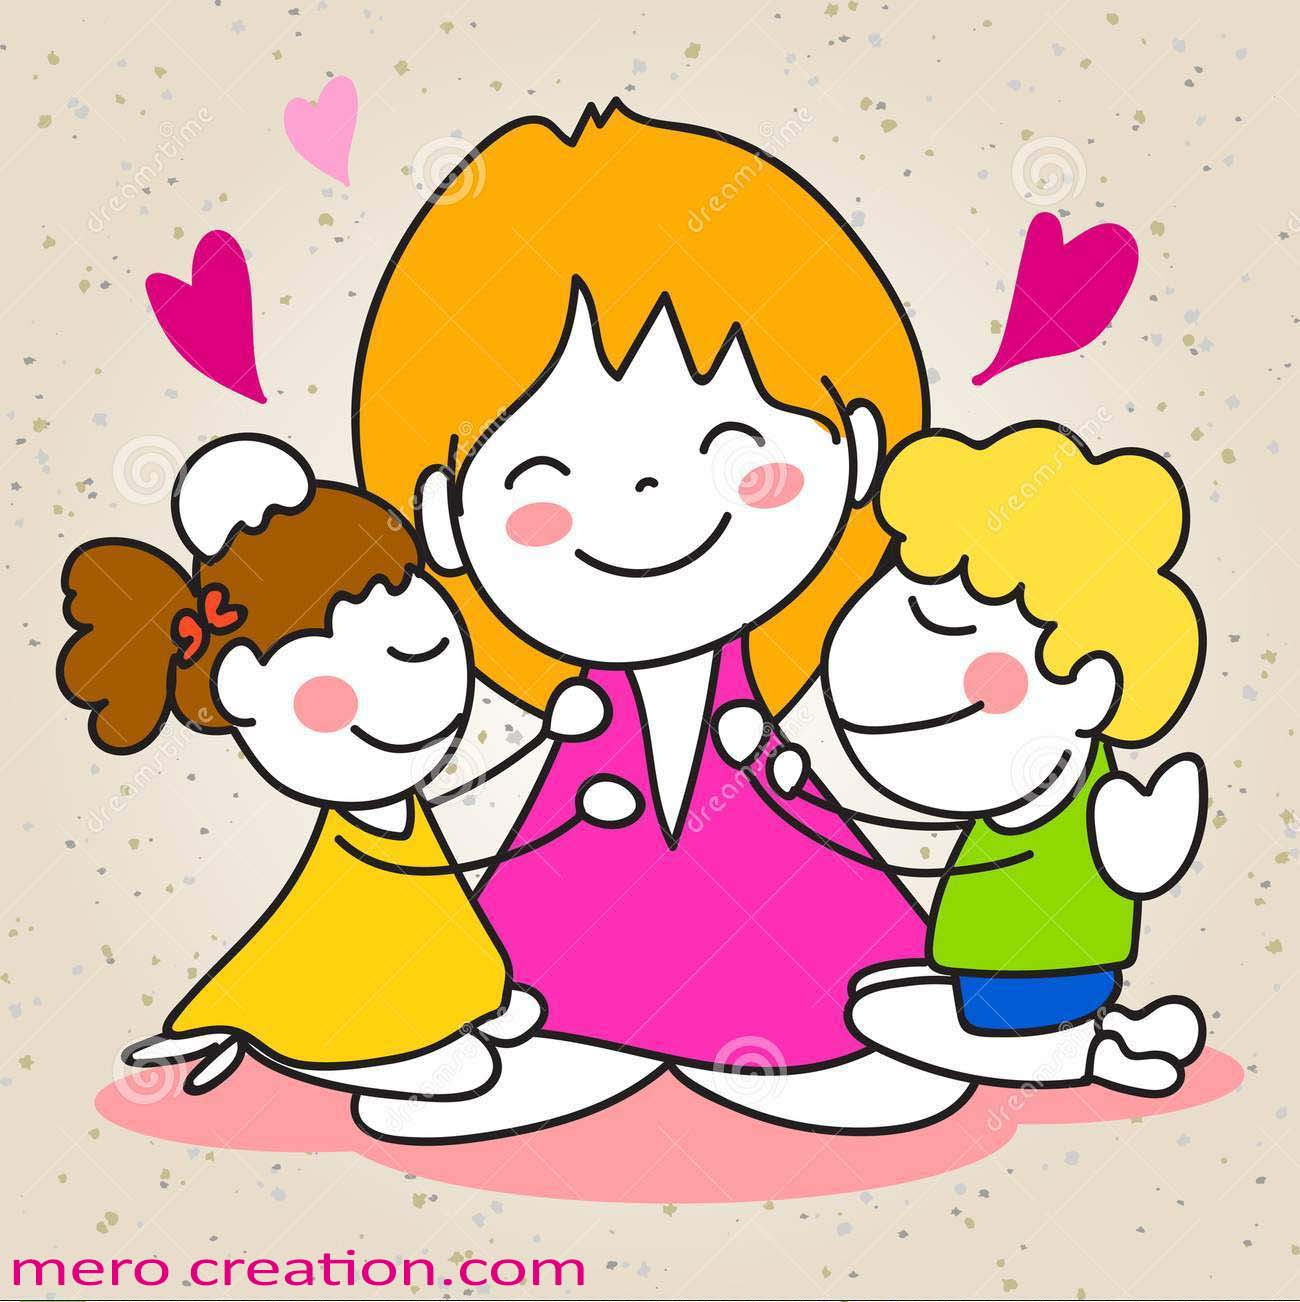 Care Your Mother